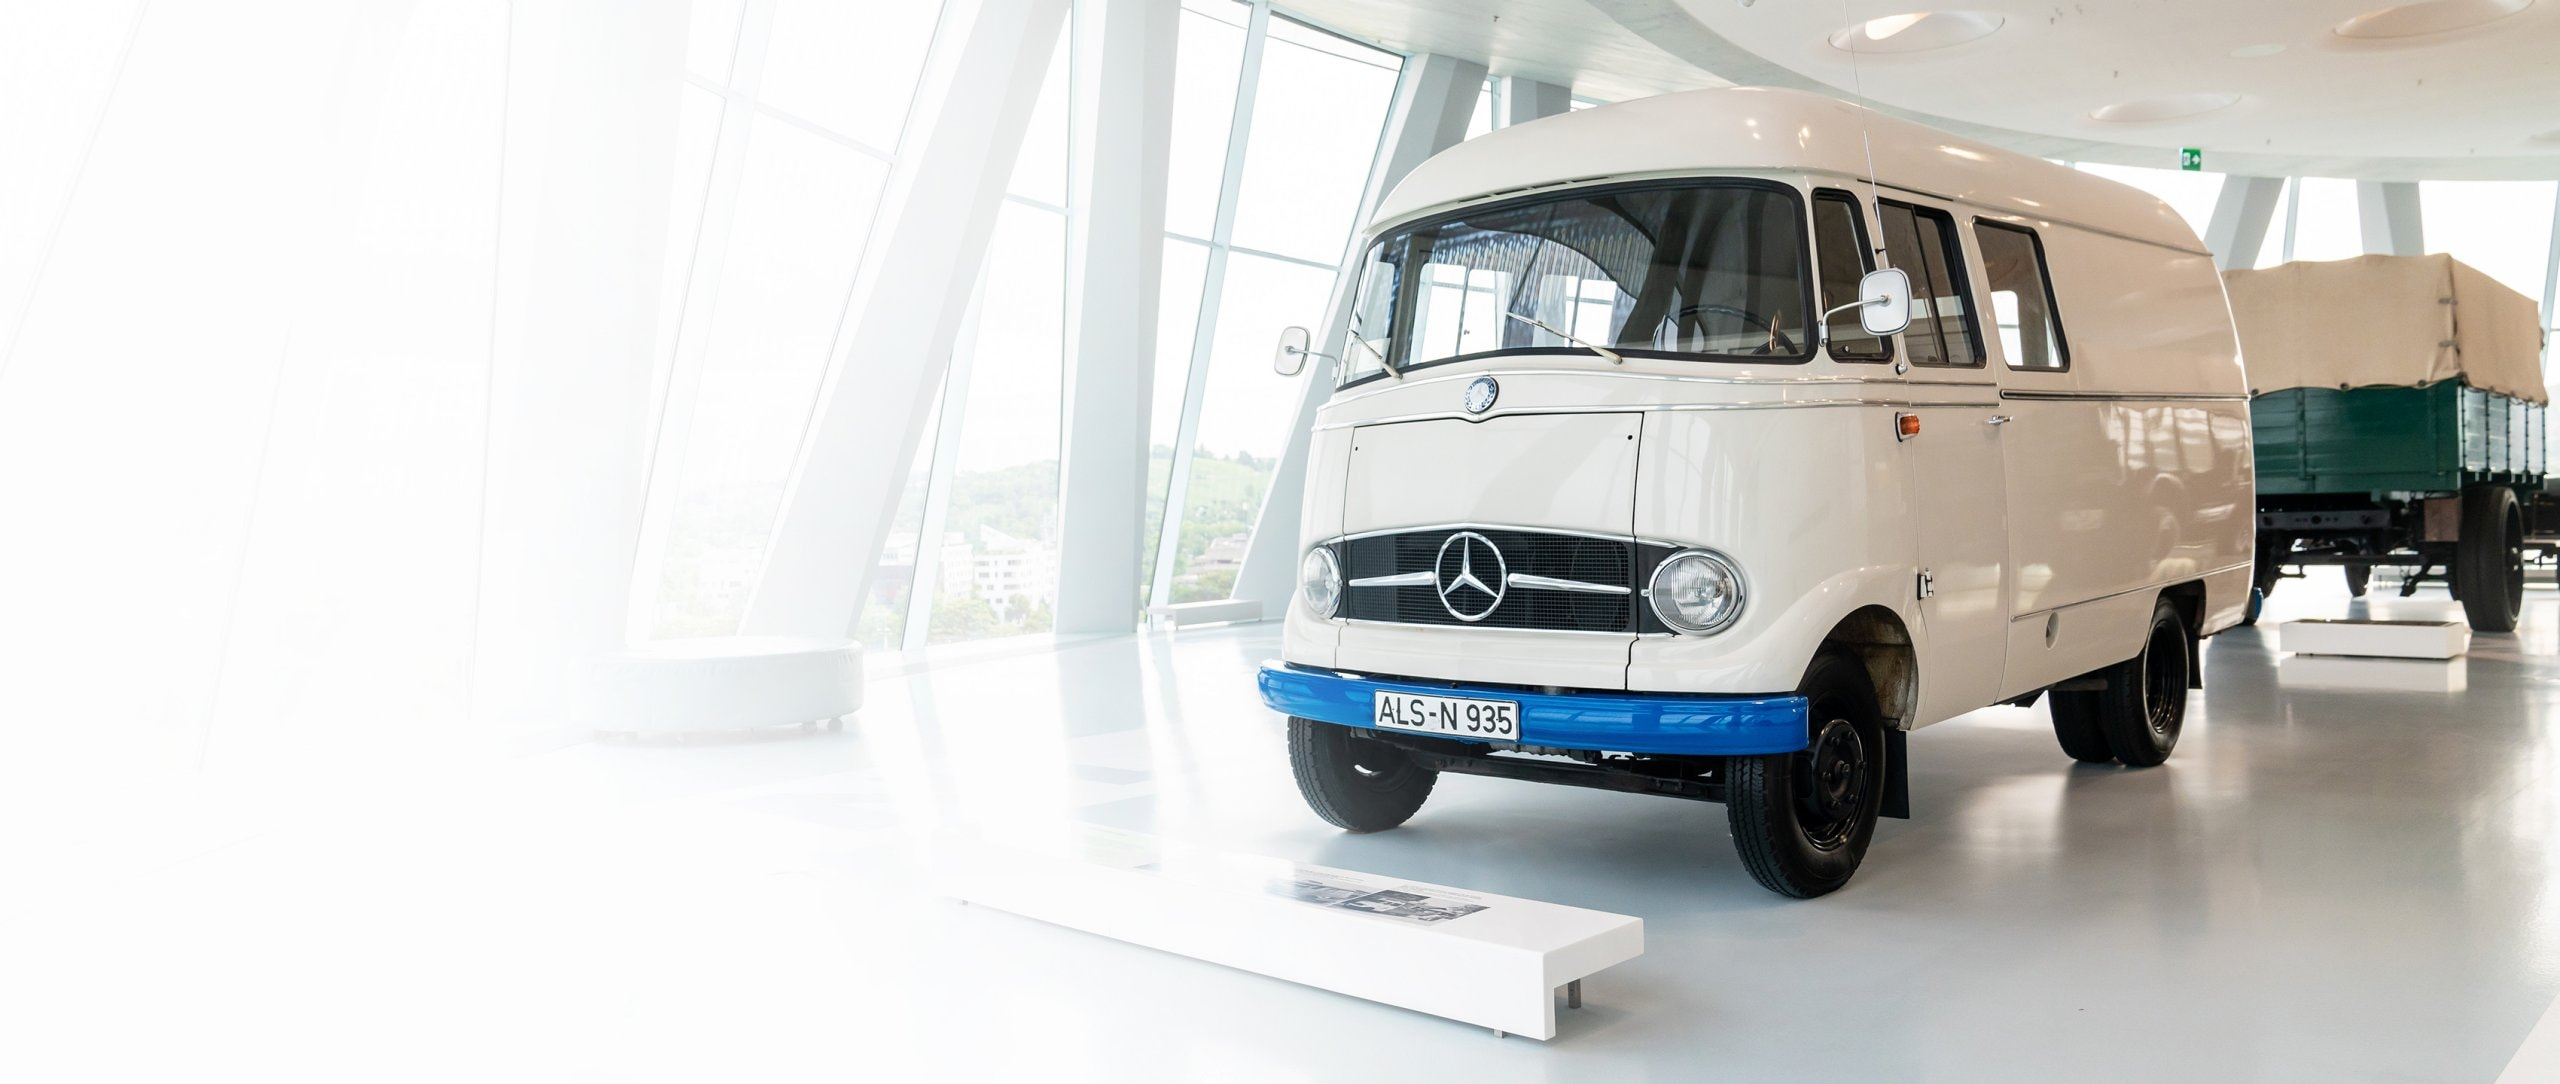 Mercedes-Benz L 406 panel van.